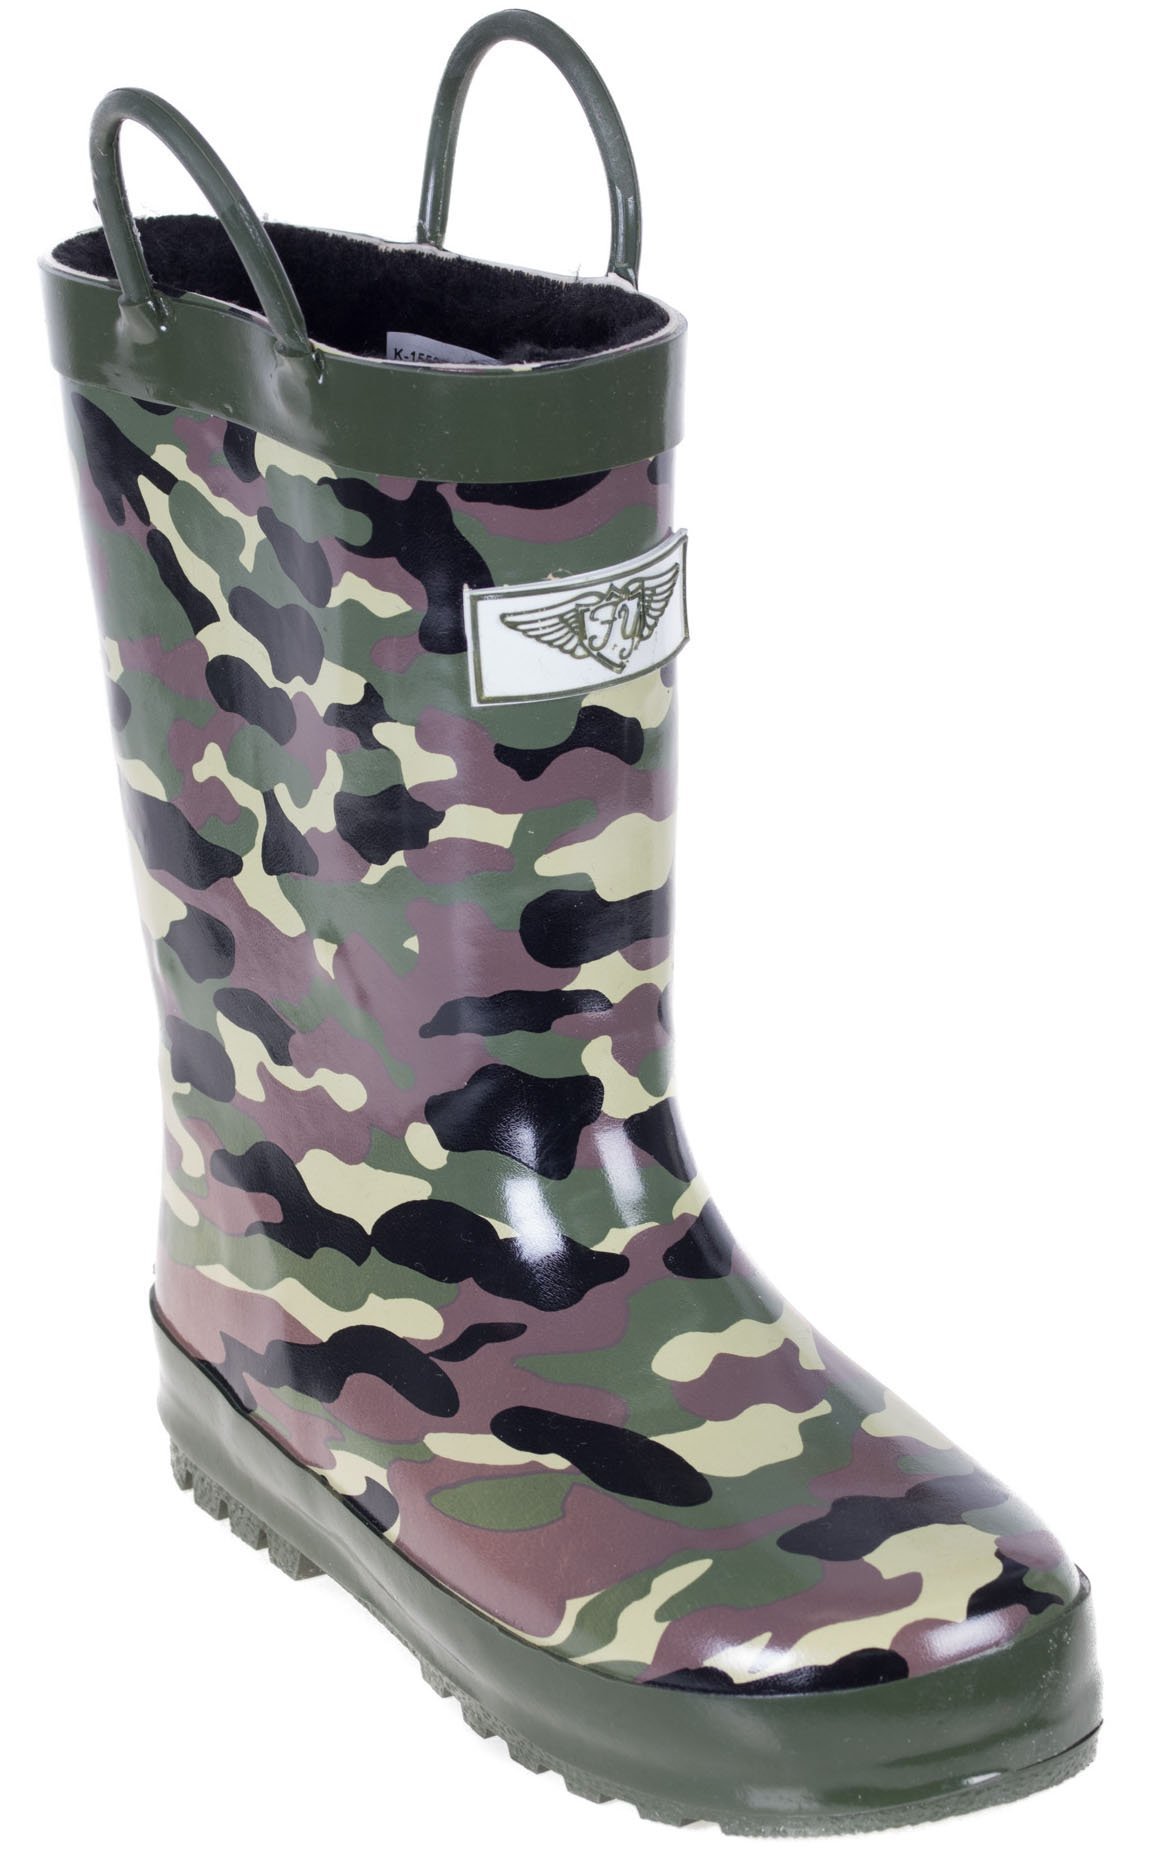 Boys Rain Rubber Boots, Best Warm Faux Fur Lined for Boys, Camo Army, Size 13 by Forever Young (Image #1)